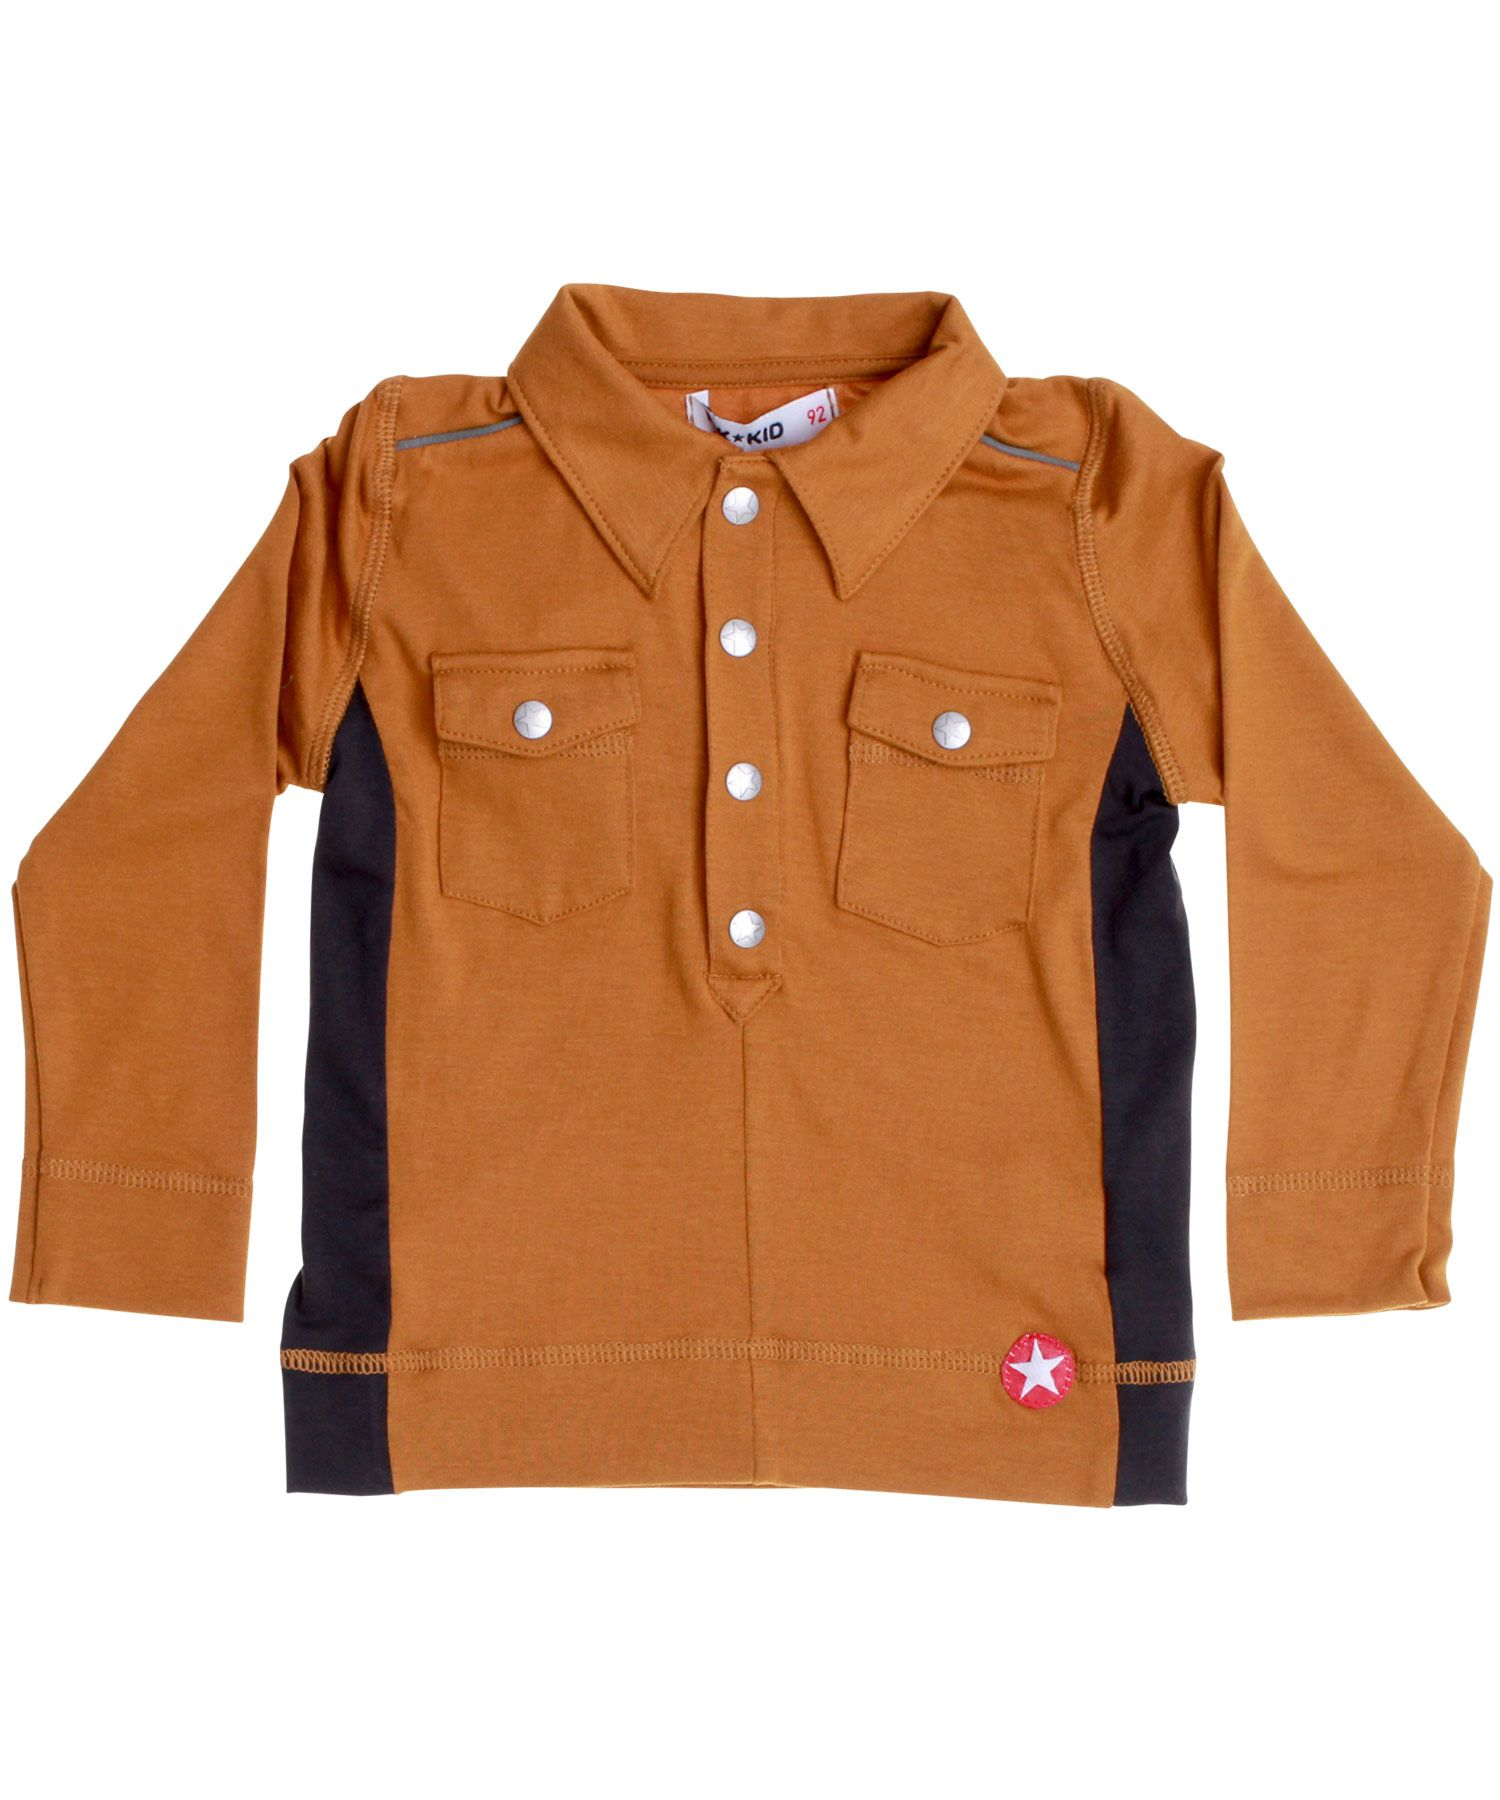 6dc25ec649cee7 Kik-Kid super cool brown shirt in super soft modal. kik-kid.en.emilea.be